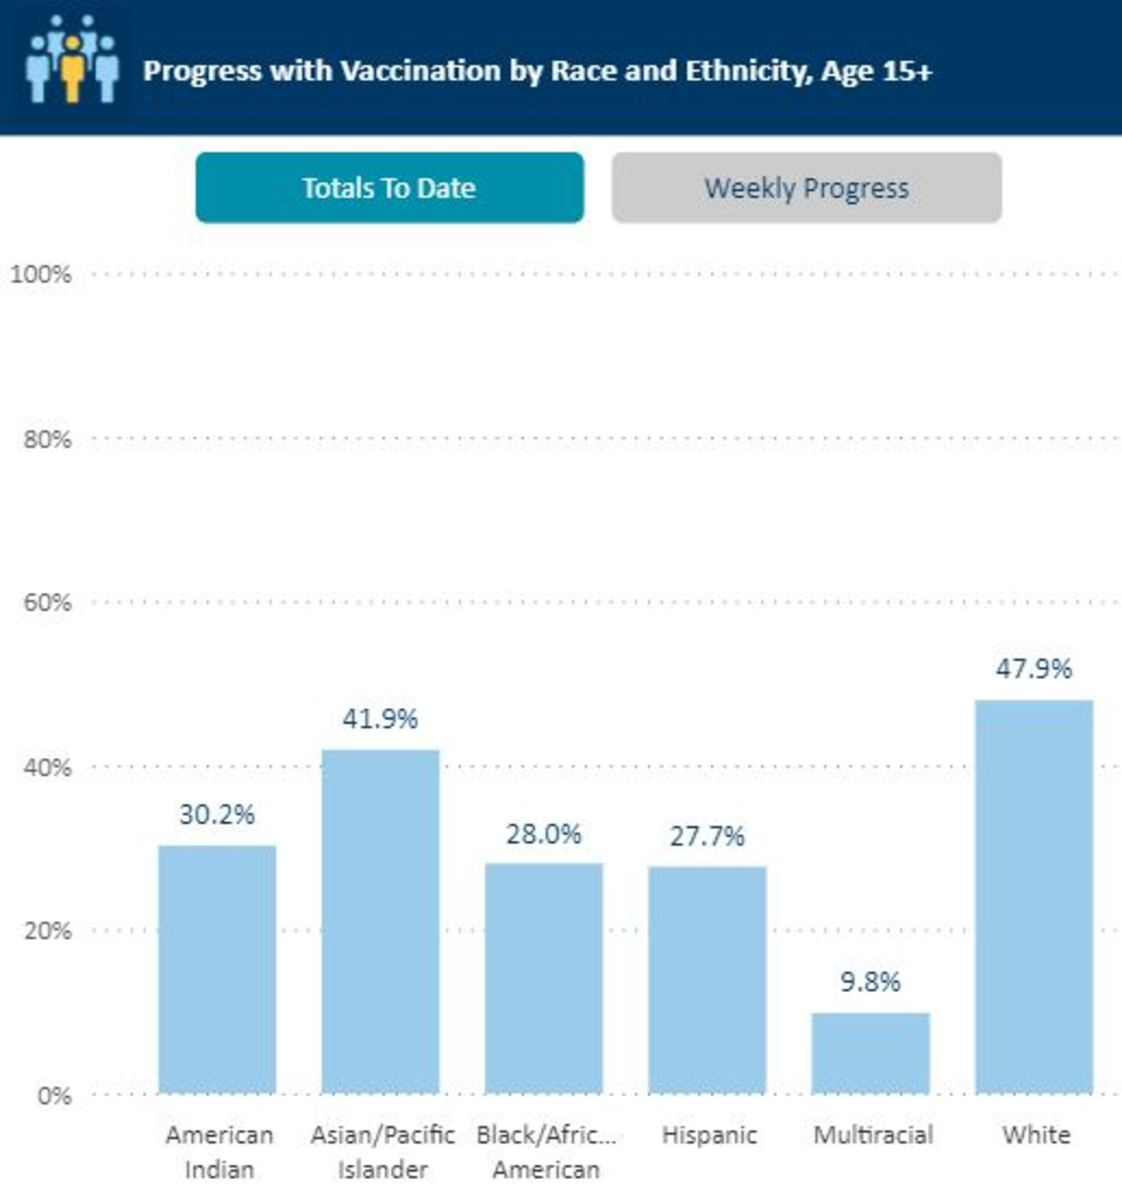 Vaccination rates by race and ethnicity, as of May 14, 2021.